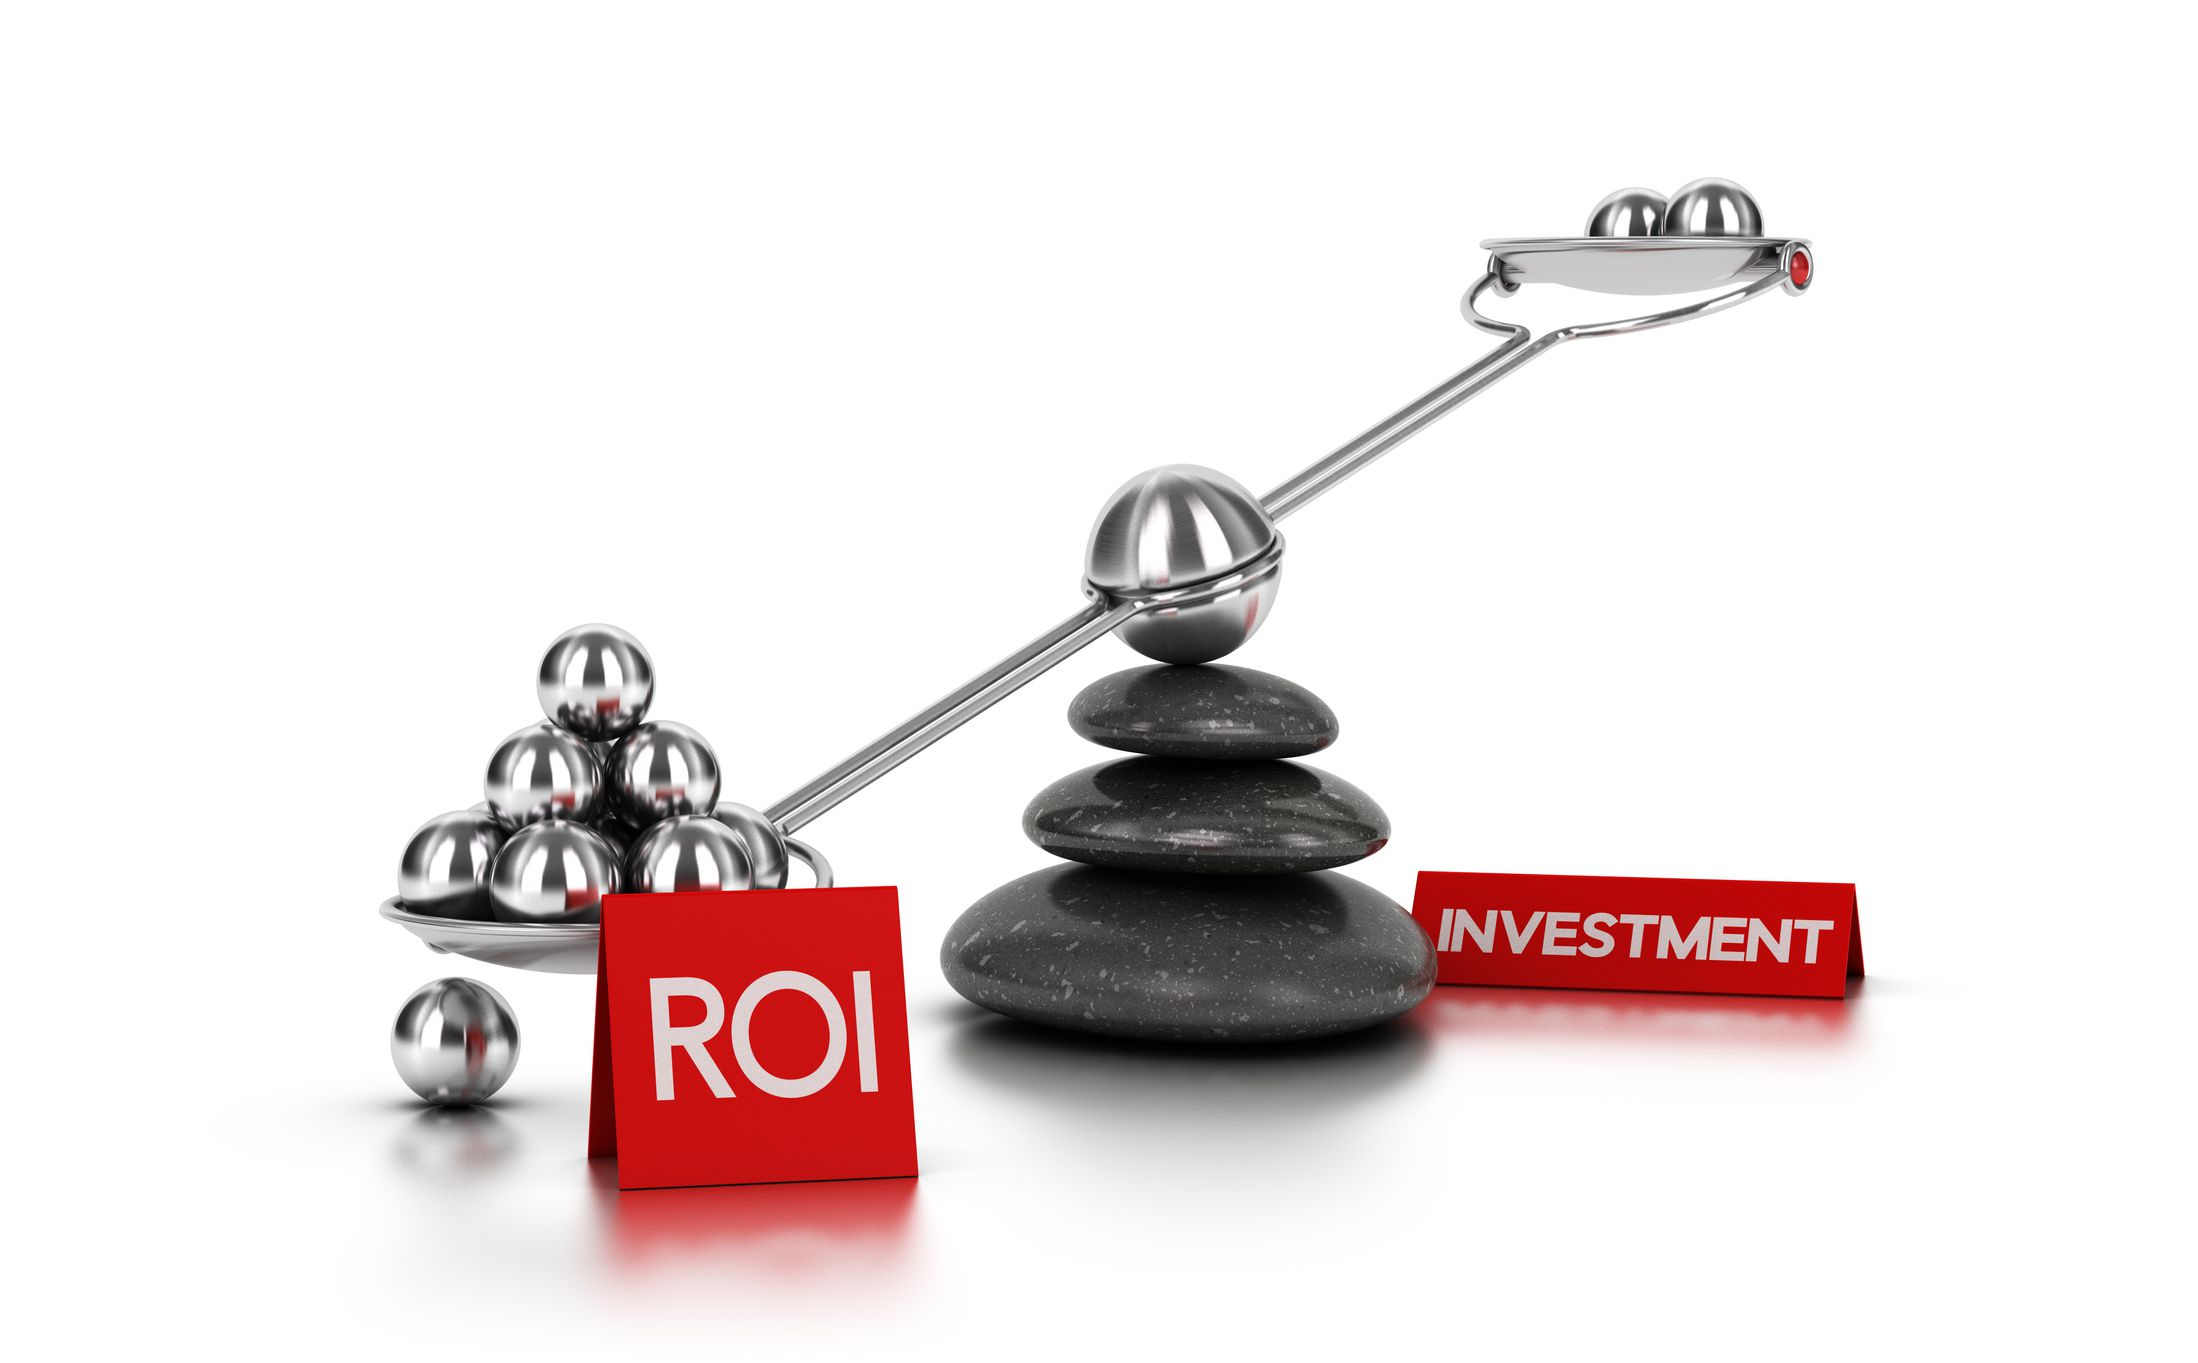 How To Calculate The Roi On A Rental Property